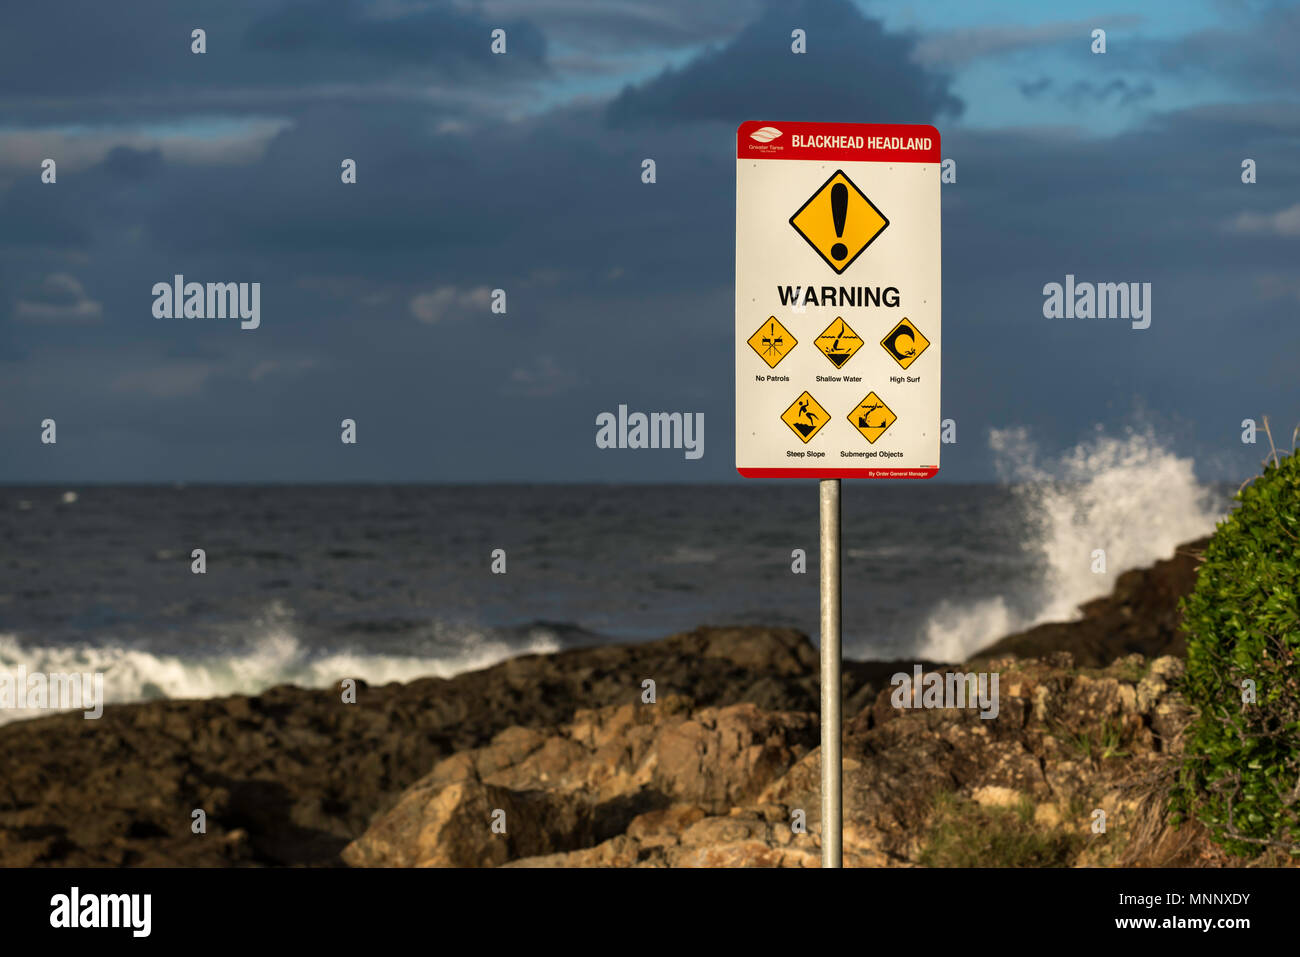 A sign on rocky outcrop near an Australian beach warning of surf hazards including hidden rocks, rips and unpredictable waves. Surf in the background - Stock Image